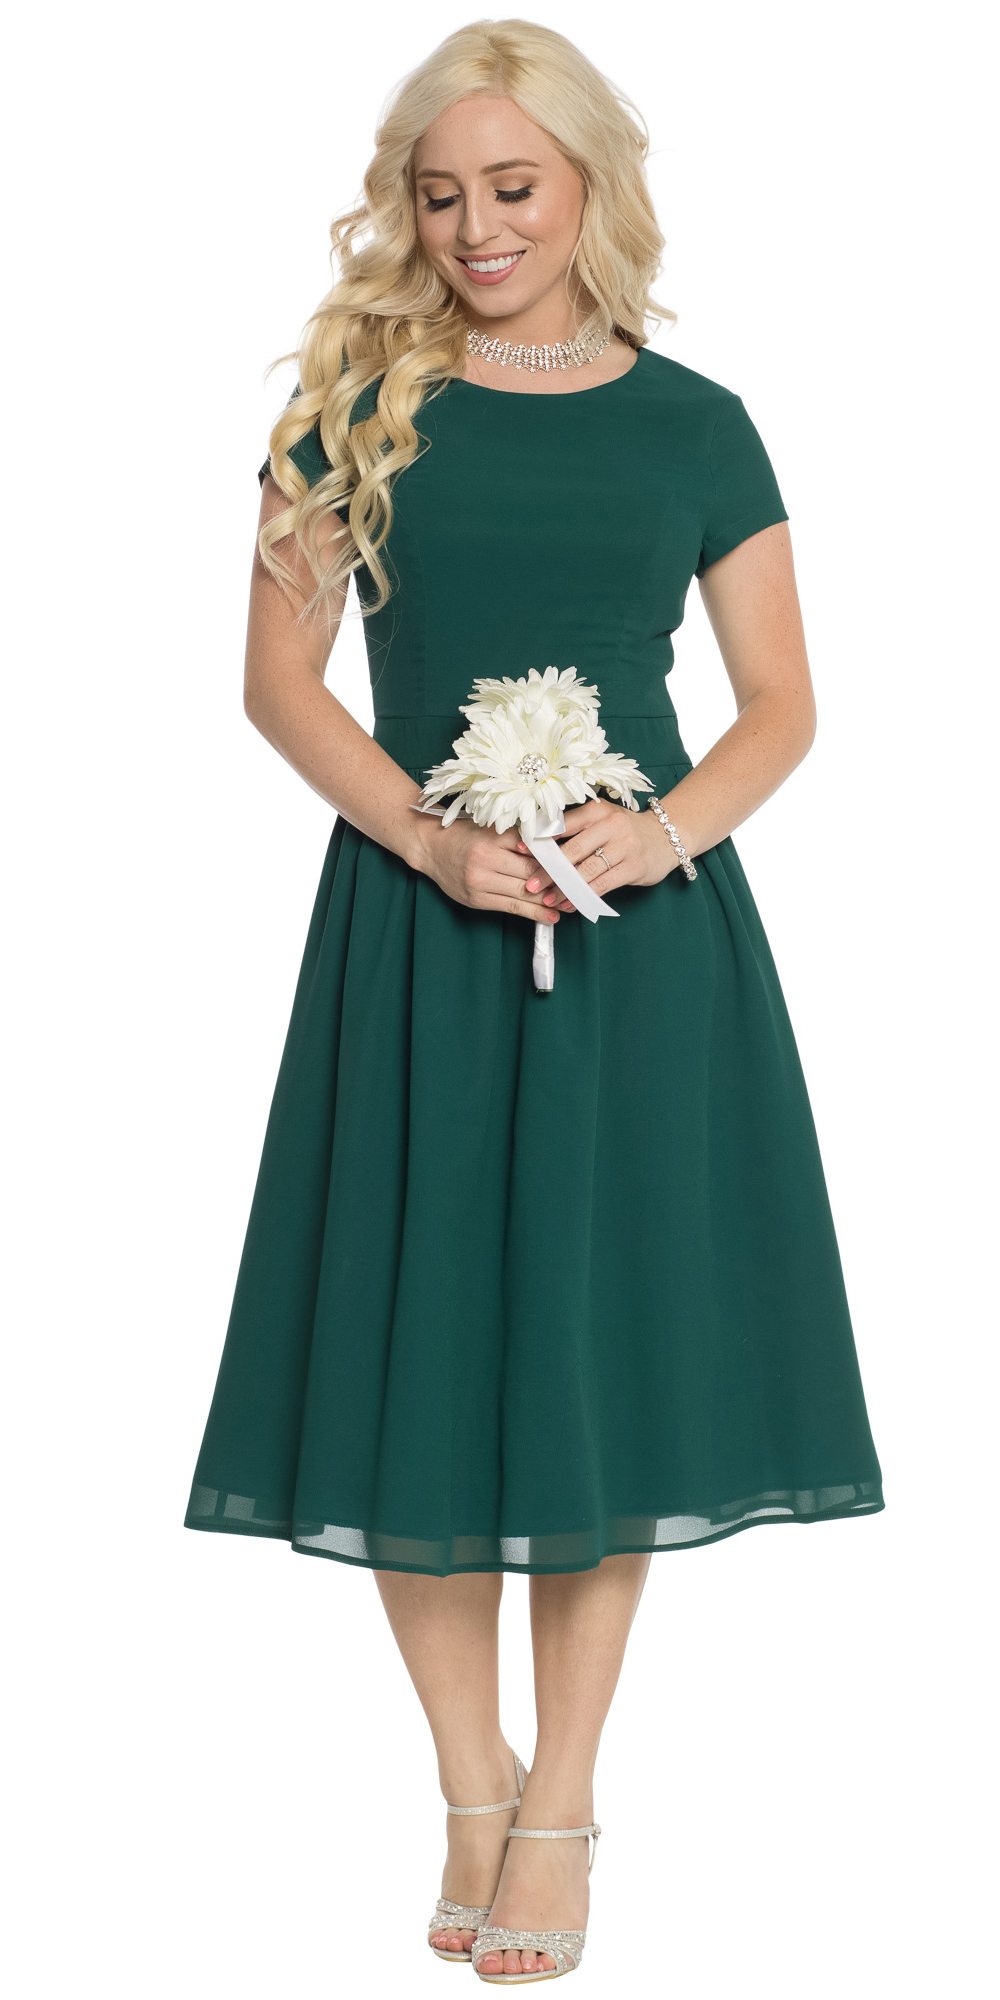 Modest bridesmaid dresses modest brides maid dresses modest lucy modest bridesmaid dress in dark forest green emerald ombrellifo Choice Image